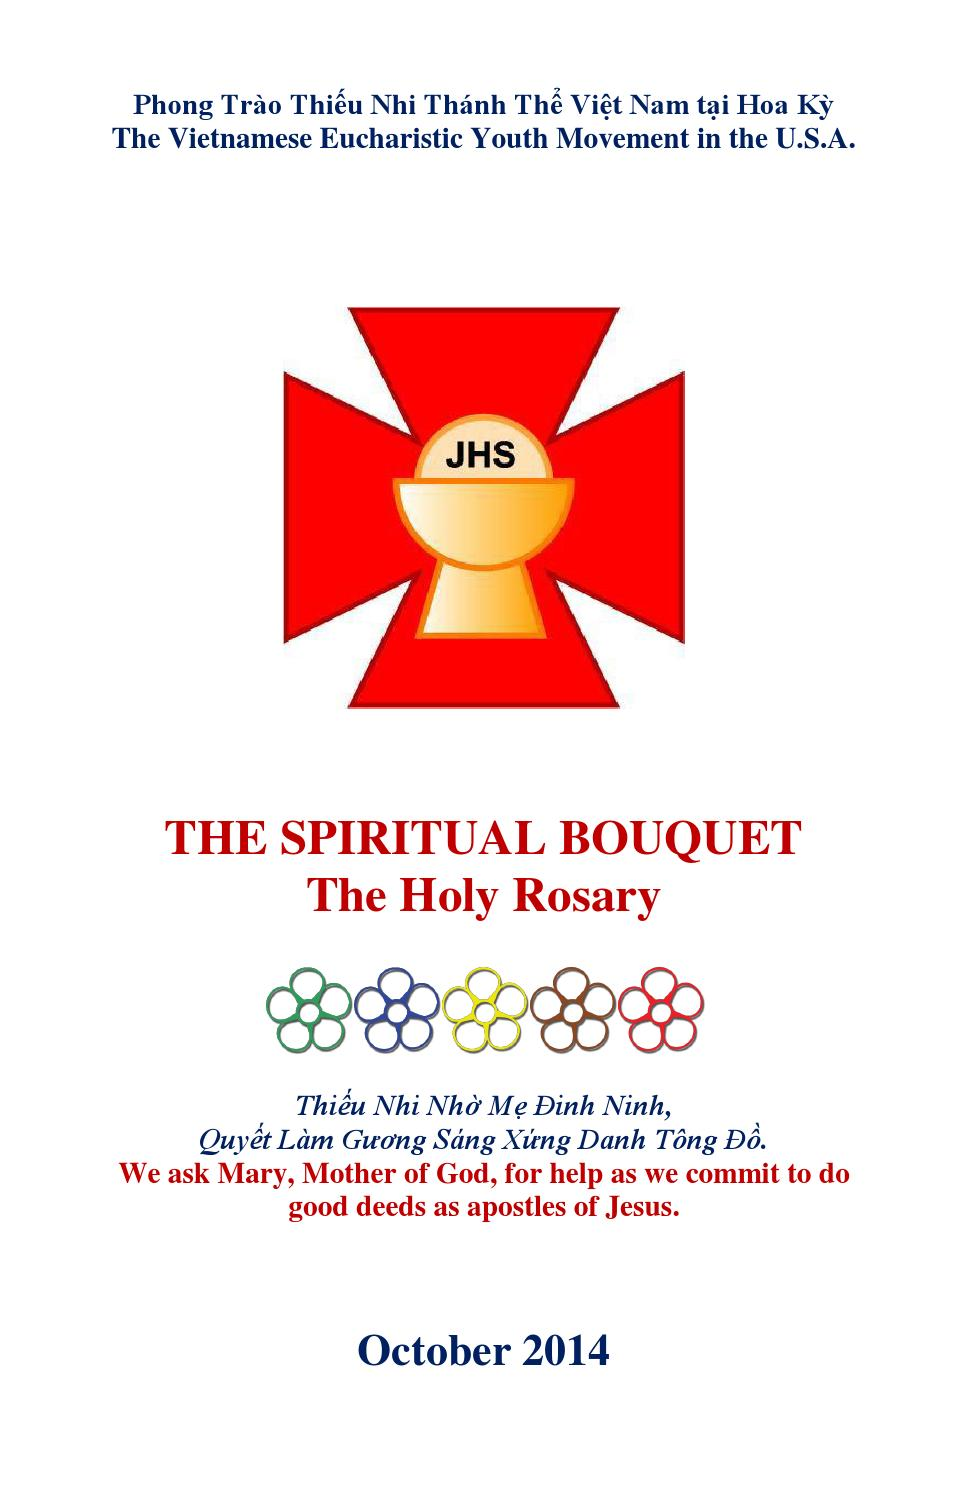 The Spiritual Bouquet Campaign The Holy Rosary Of October 2014 By Miền Tay Pttnttvnhk Issuu